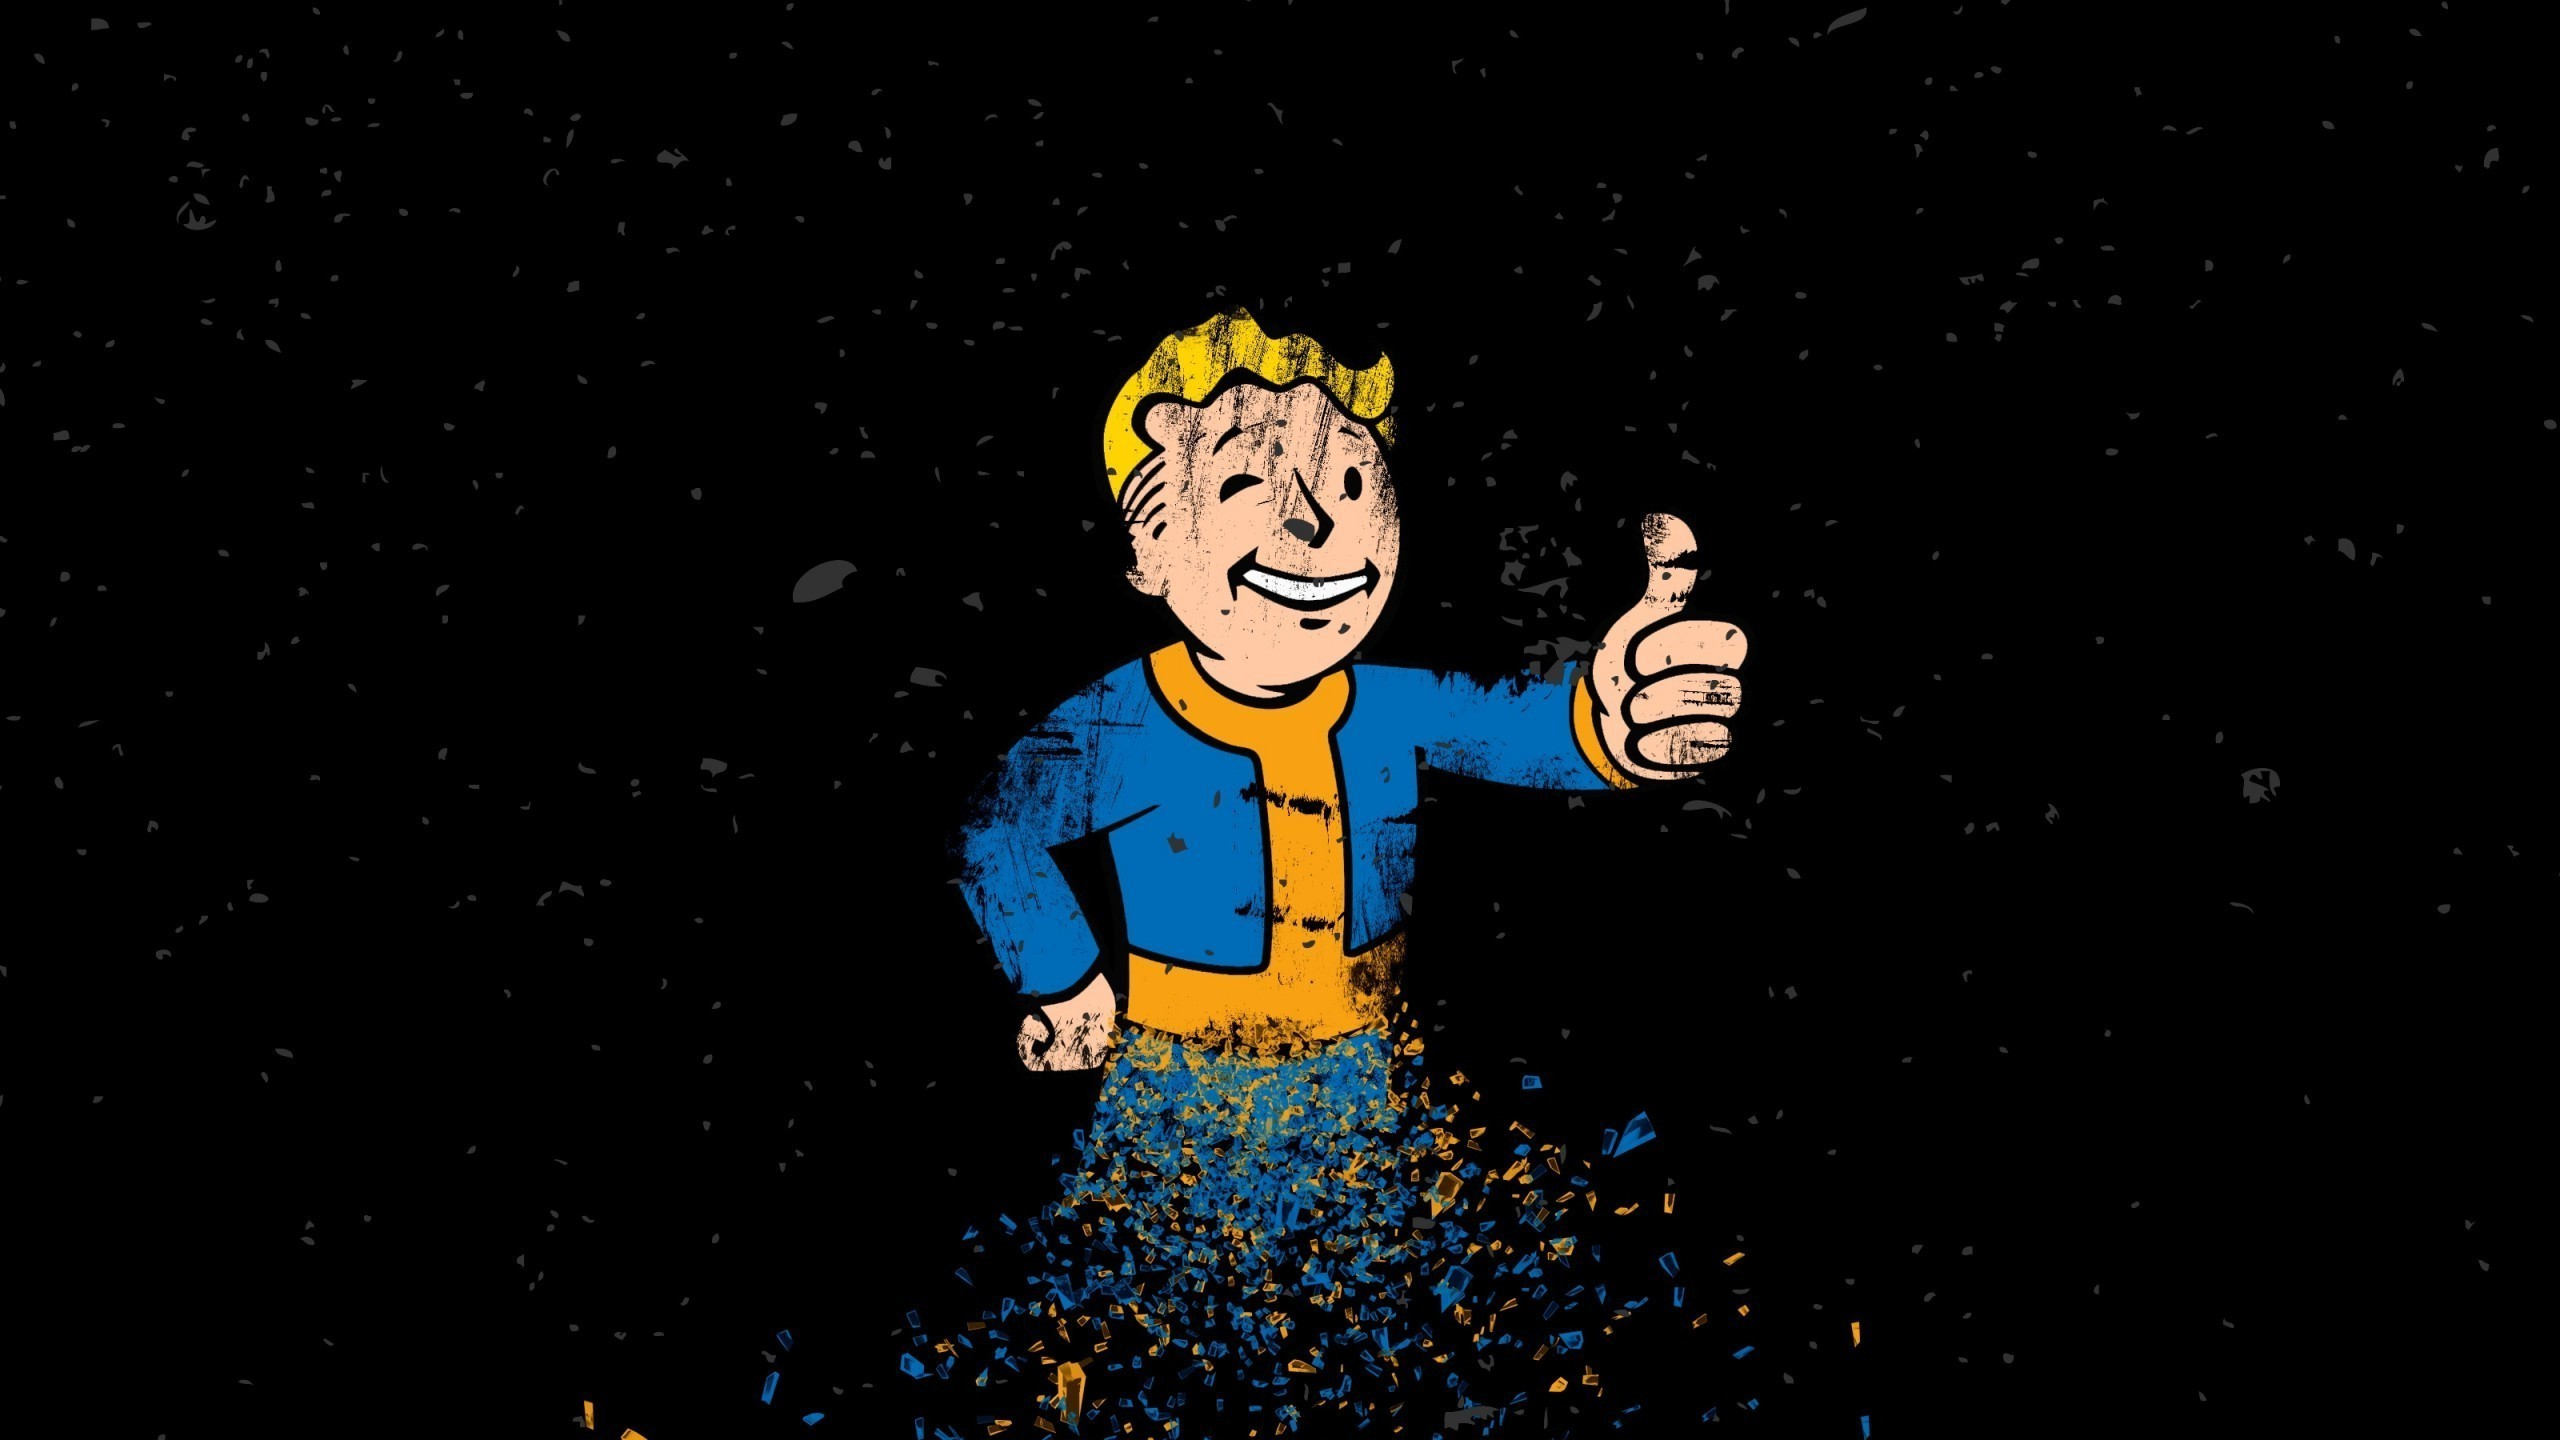 Fallout Vault Boy Wallpaper Pictures to Pin on Pinterest – PinsDaddy